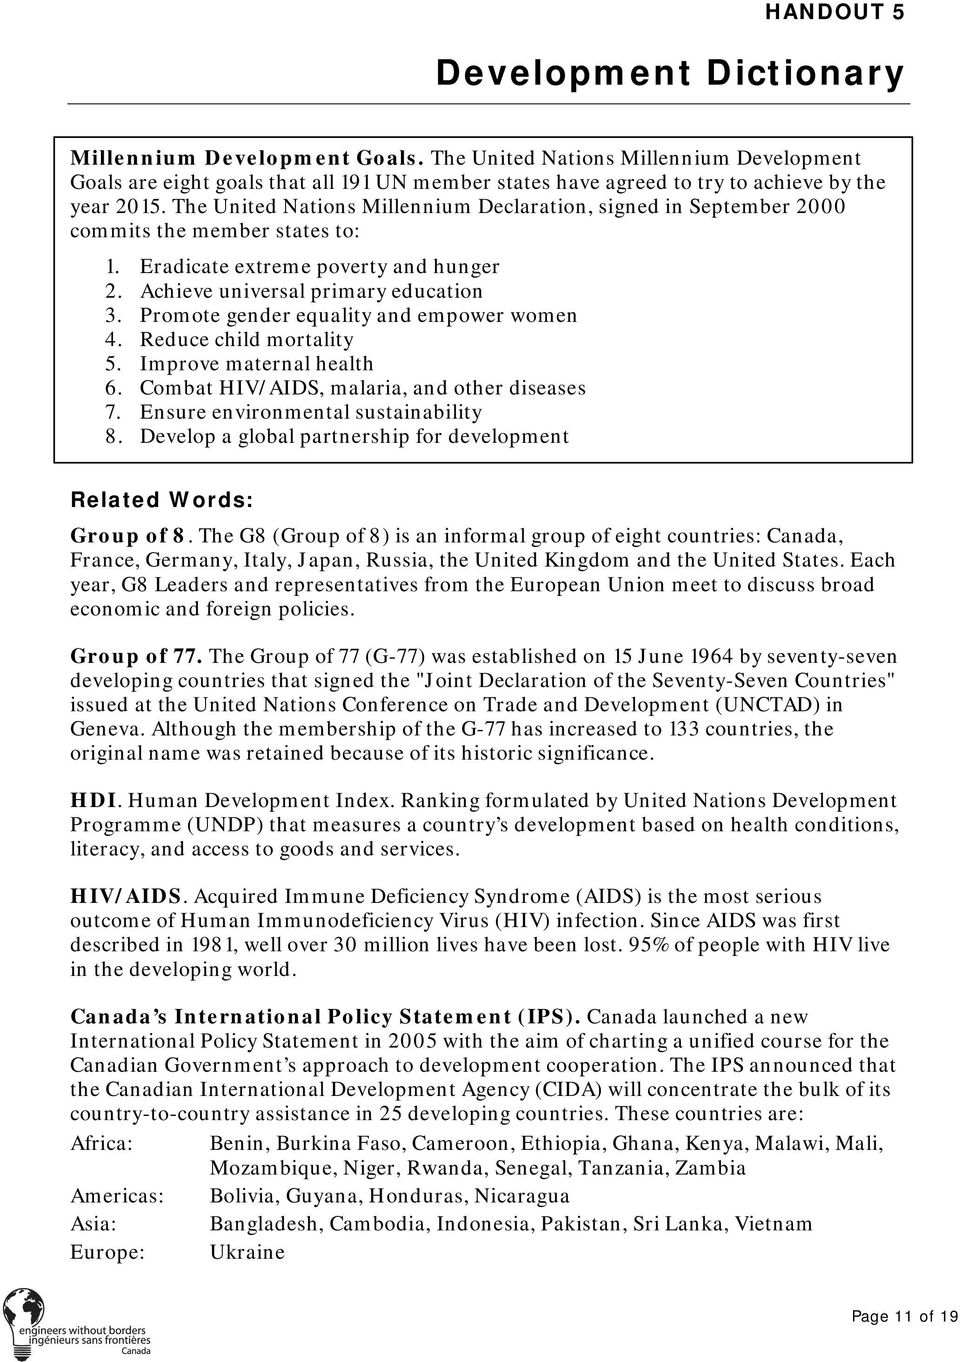 Ges rme syllabus for primary 2 manual array pdf files on rme syllabus for primary schools in ghana are you rh asapenual fandeluxe Images